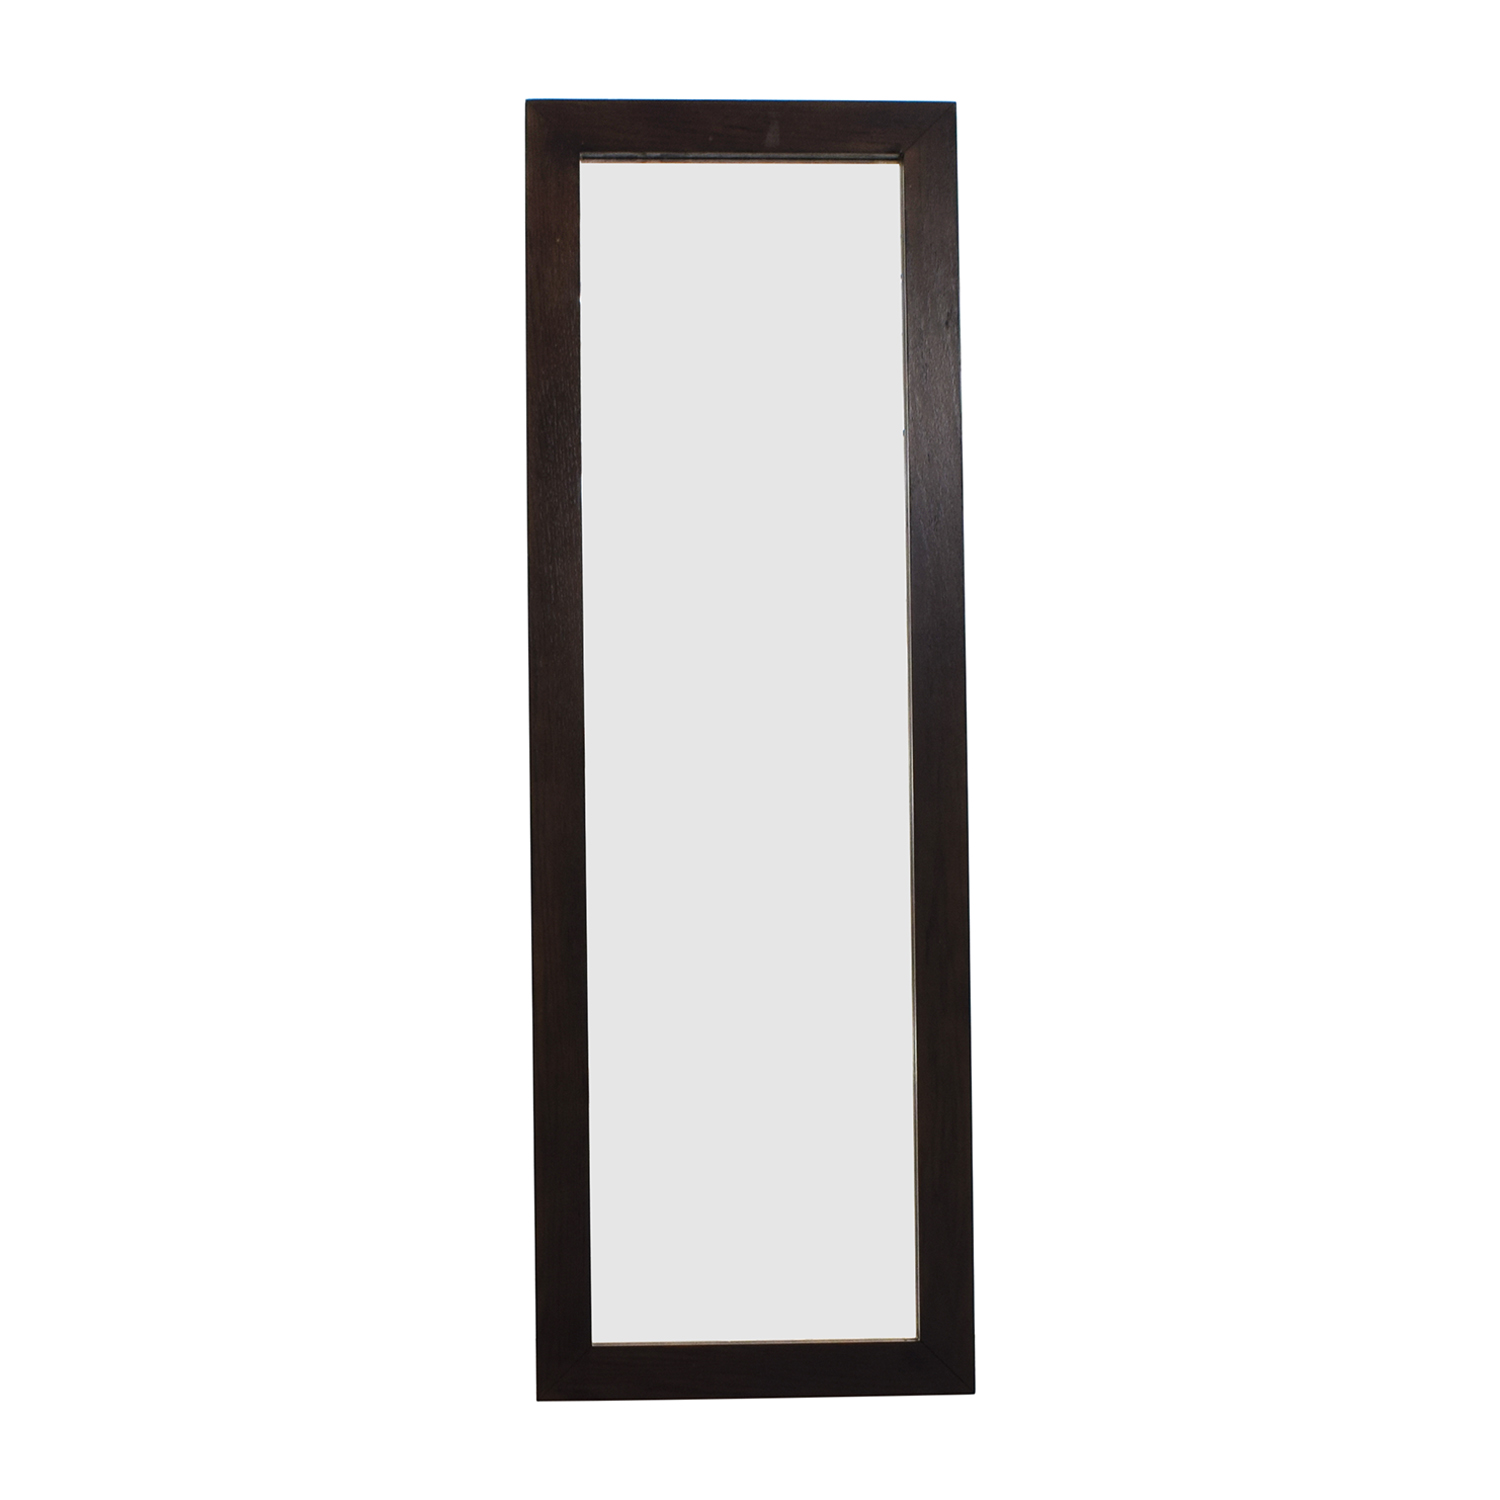 West Elm Floating Wood Floor Mirror sale